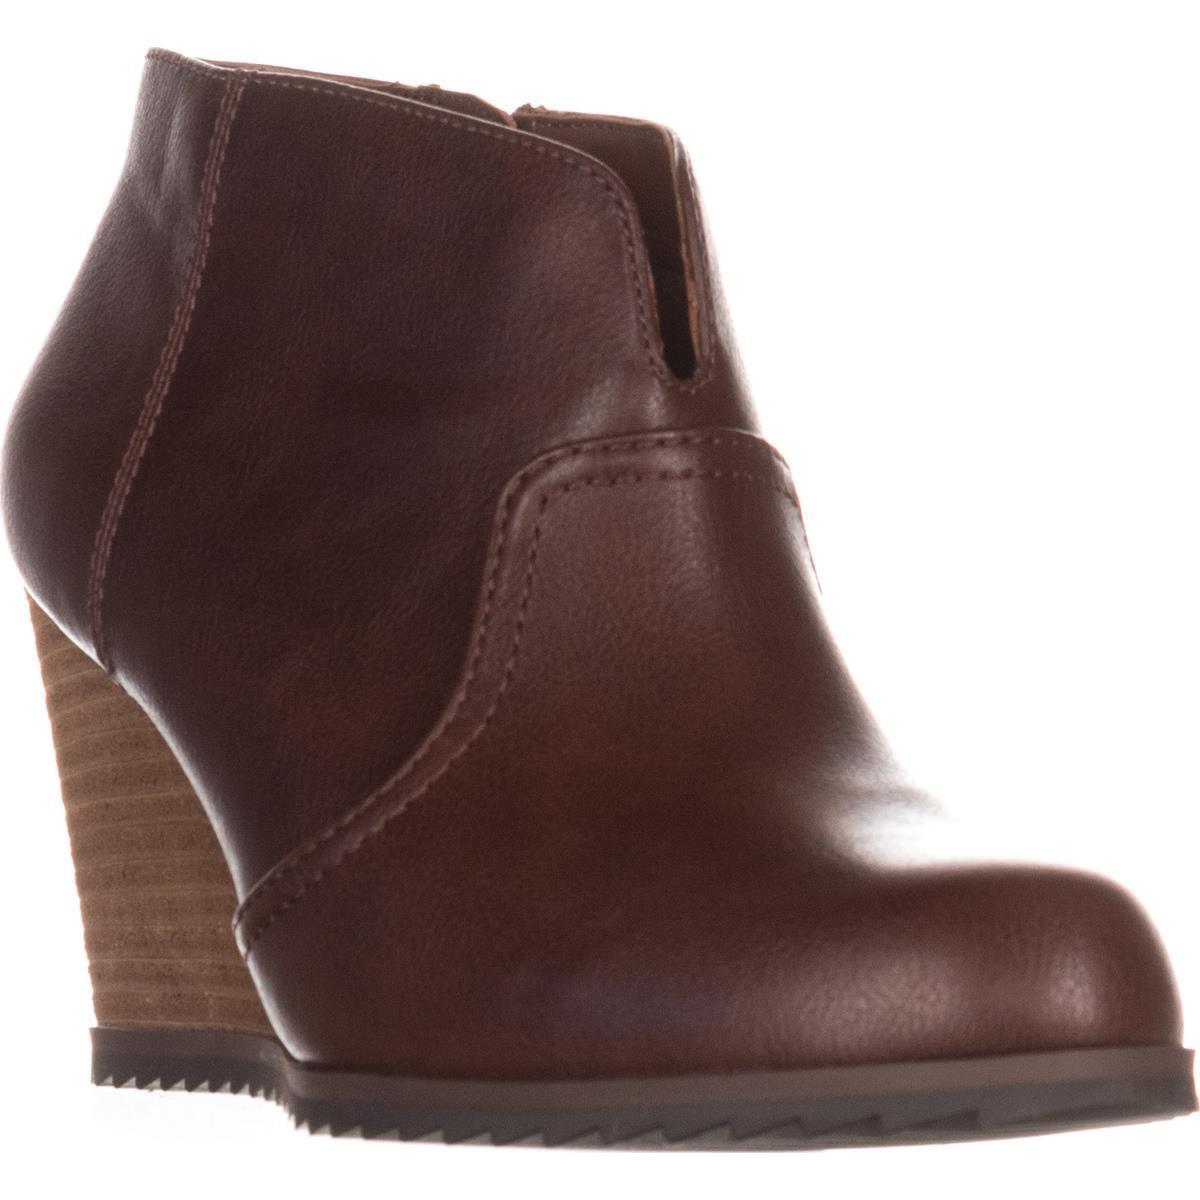 Womens Dr. Sholl's Inform Wedge Ankle Boots, Copper Brown